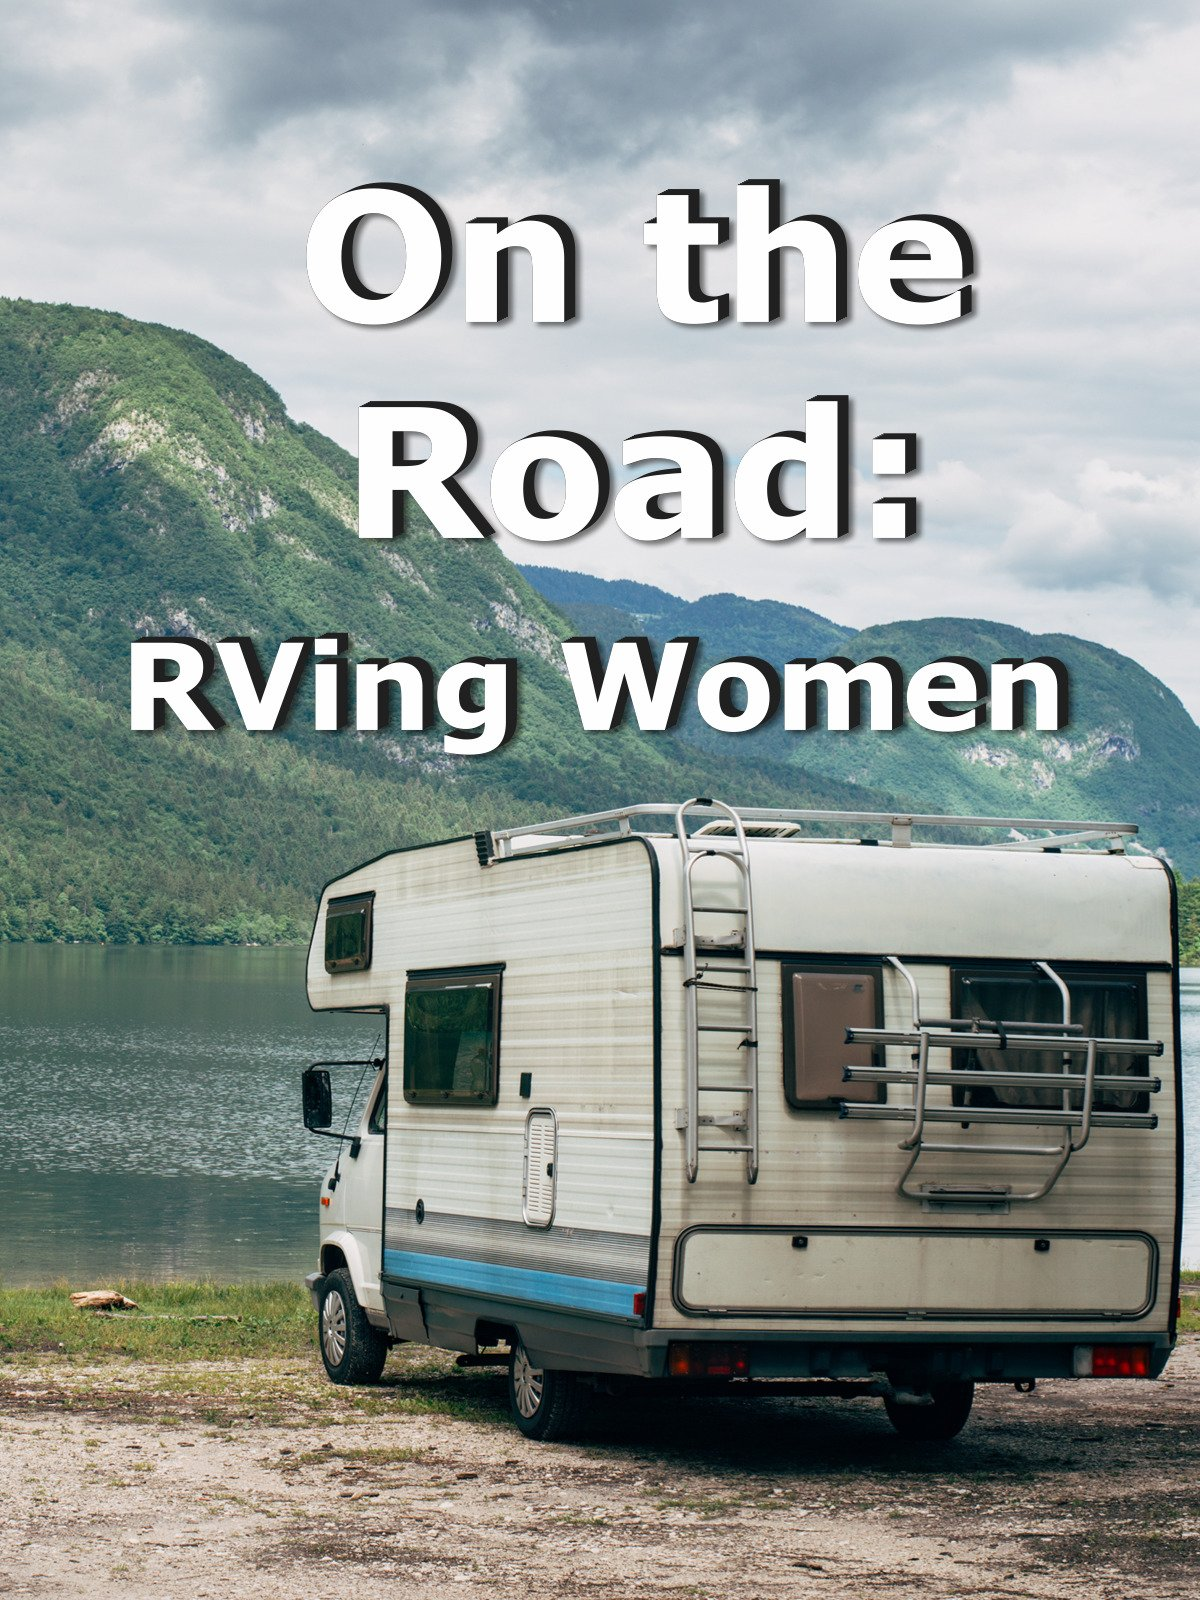 On the Road: RVing Women